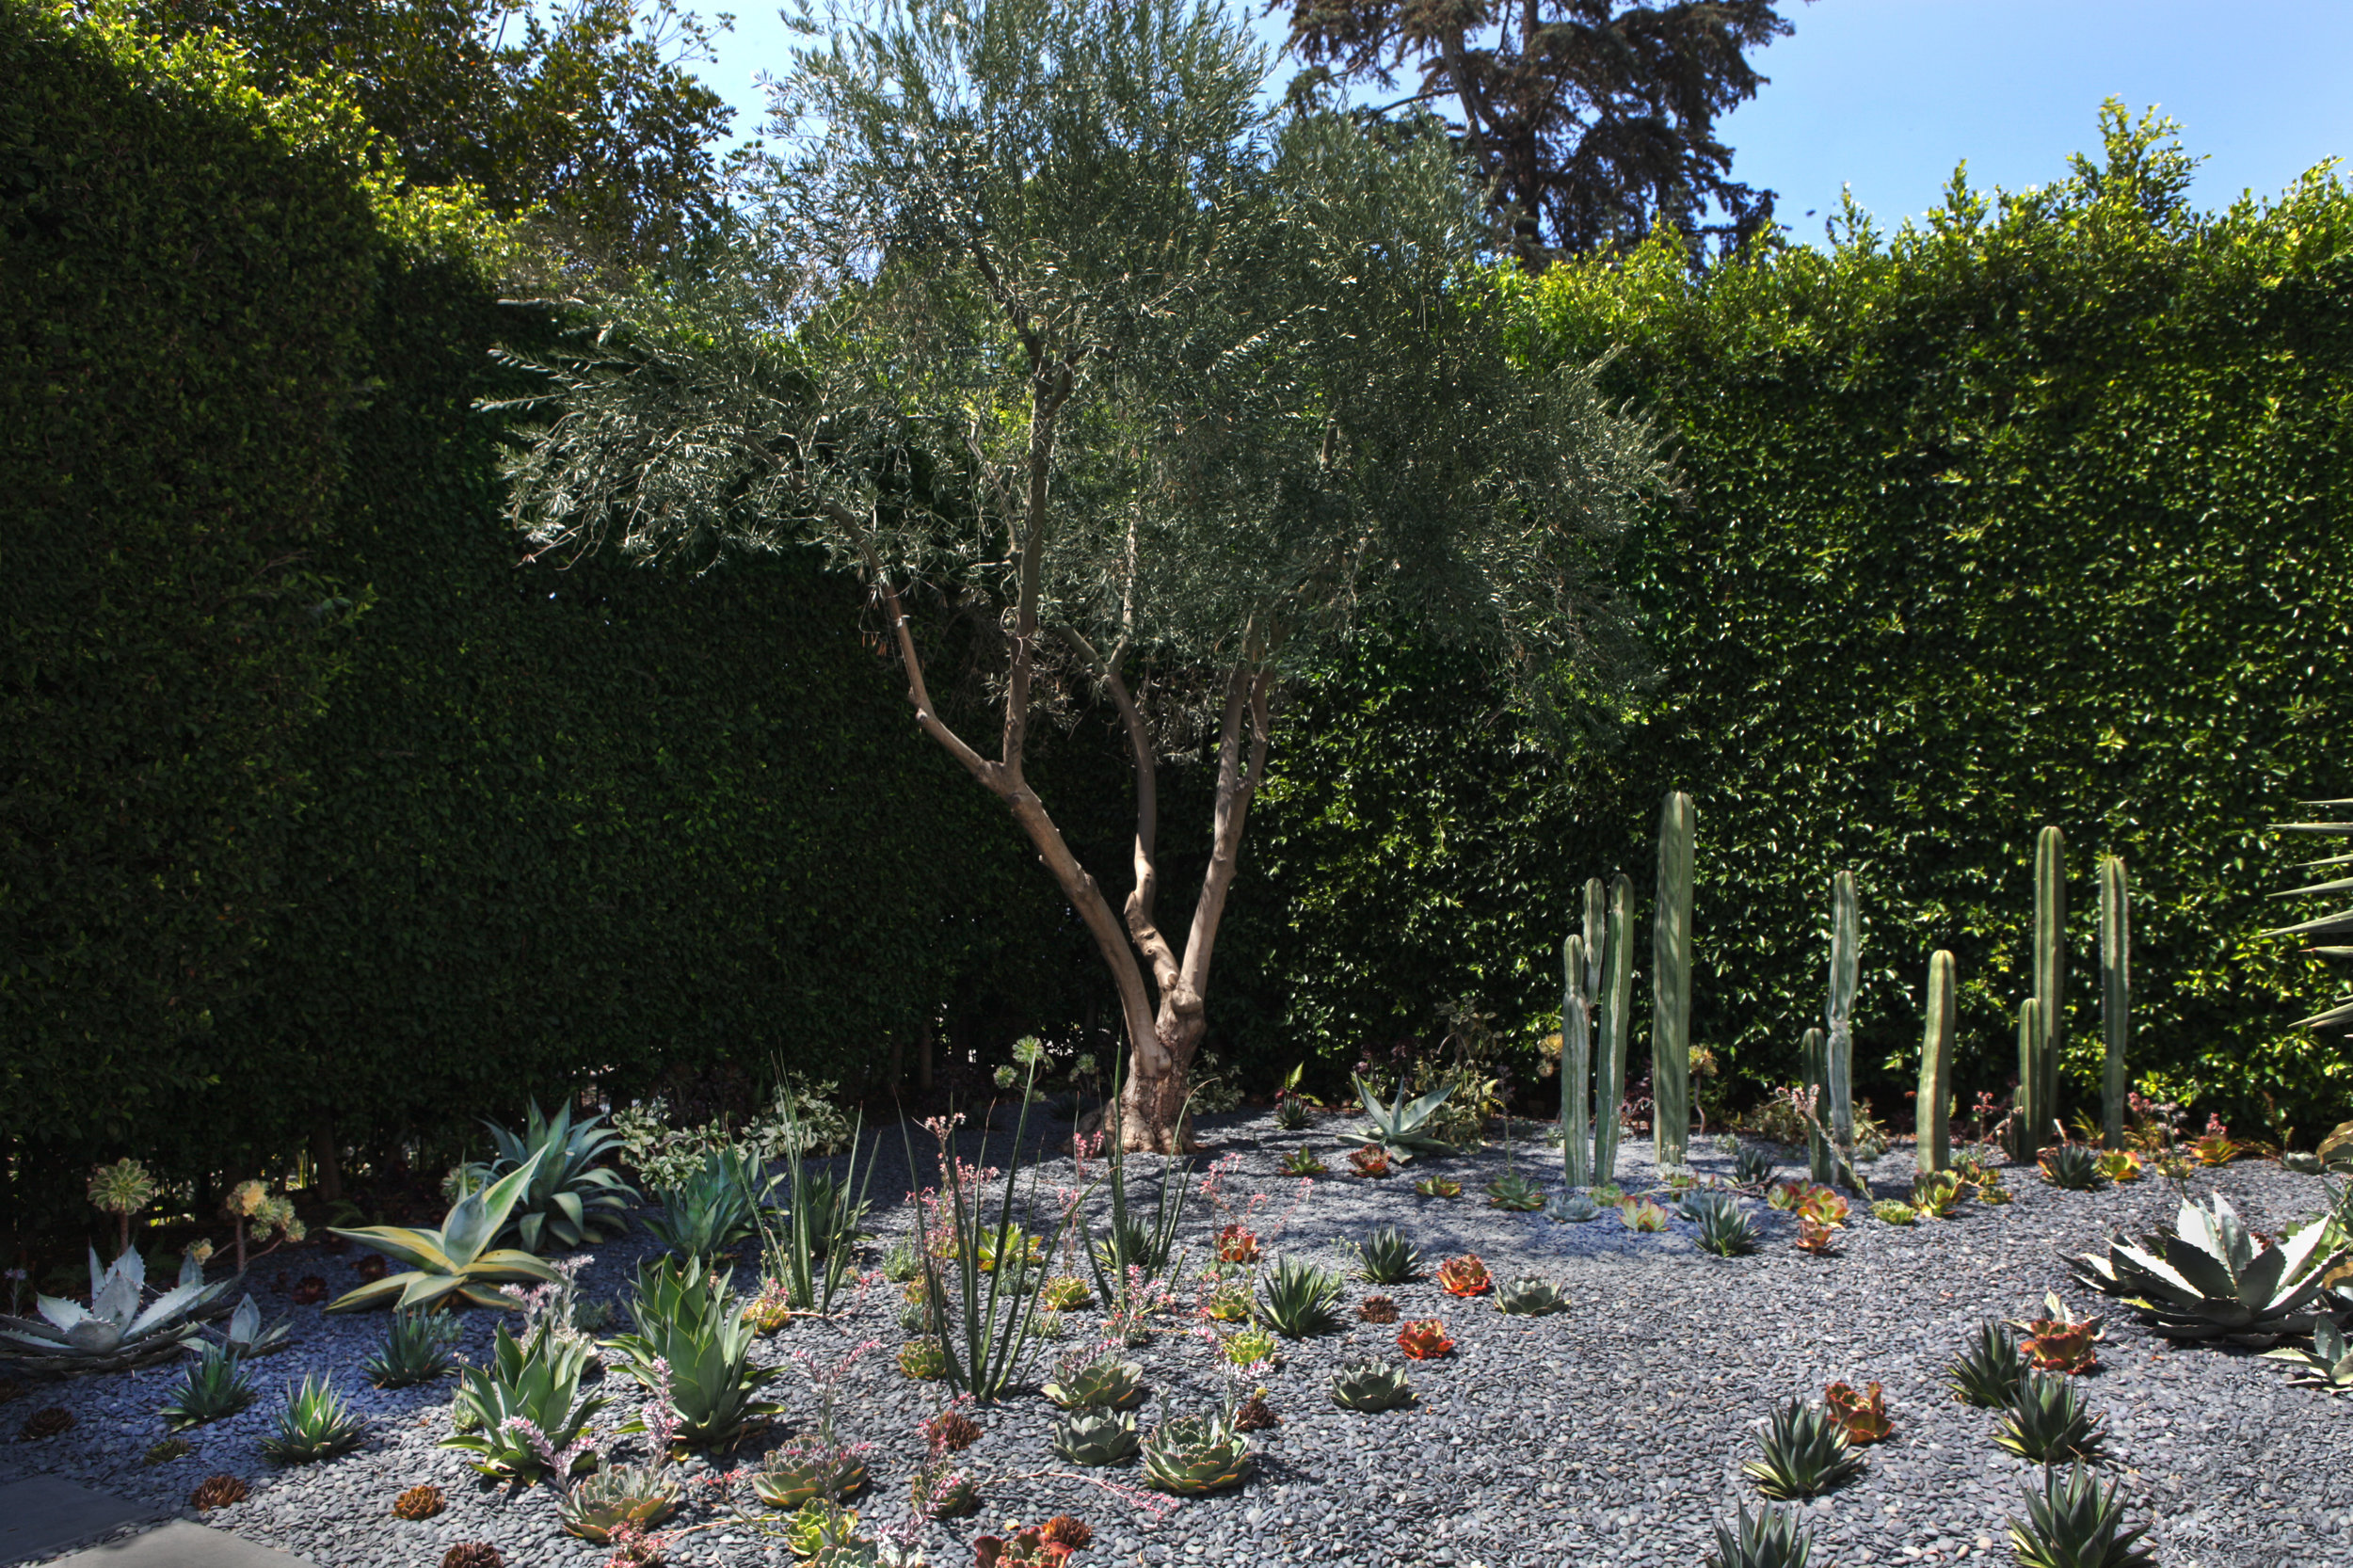 olive tree walled garden - Drought tolerant moroccan inspired xeriscape West Hollywood walled garden hedge house - Los Angeles garden design by Campion Walker Landscapes